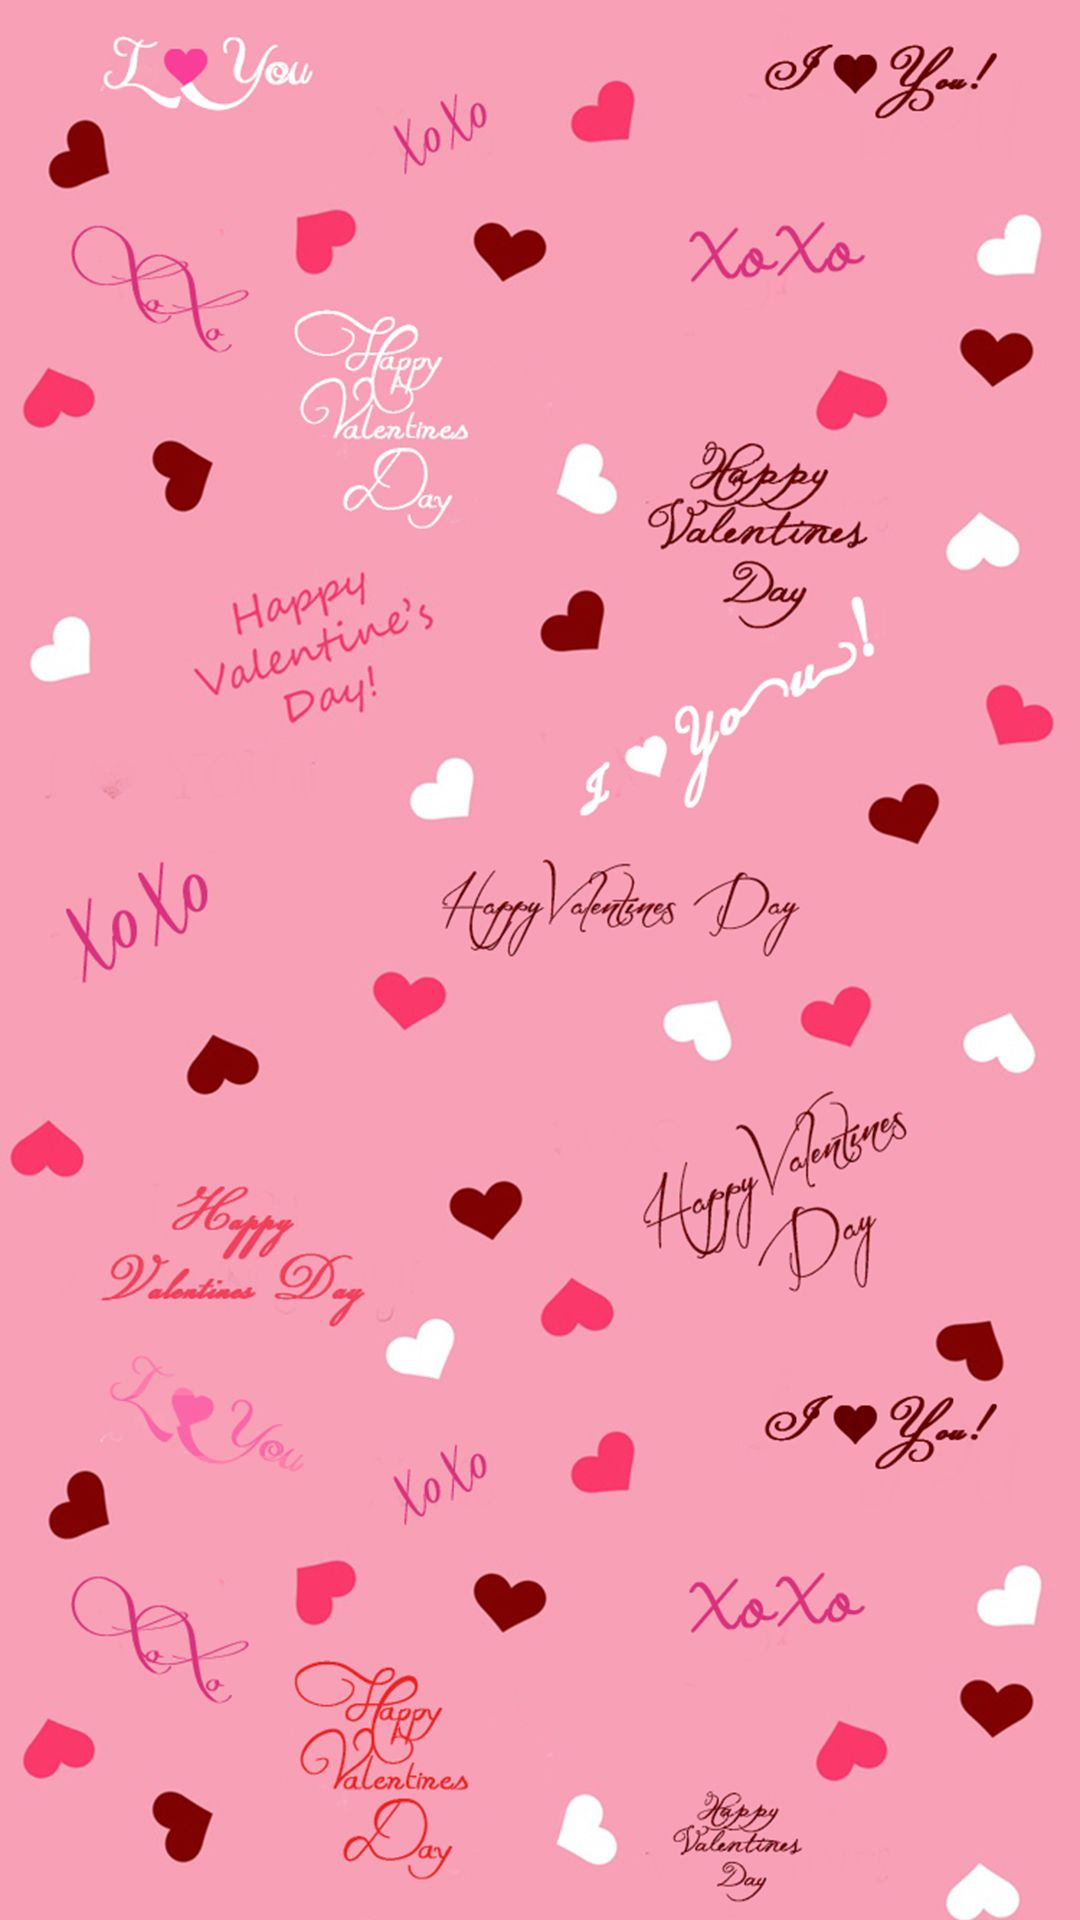 41 Cute Valentine iPhone Wallpapers To Download Valentines 1080x1920